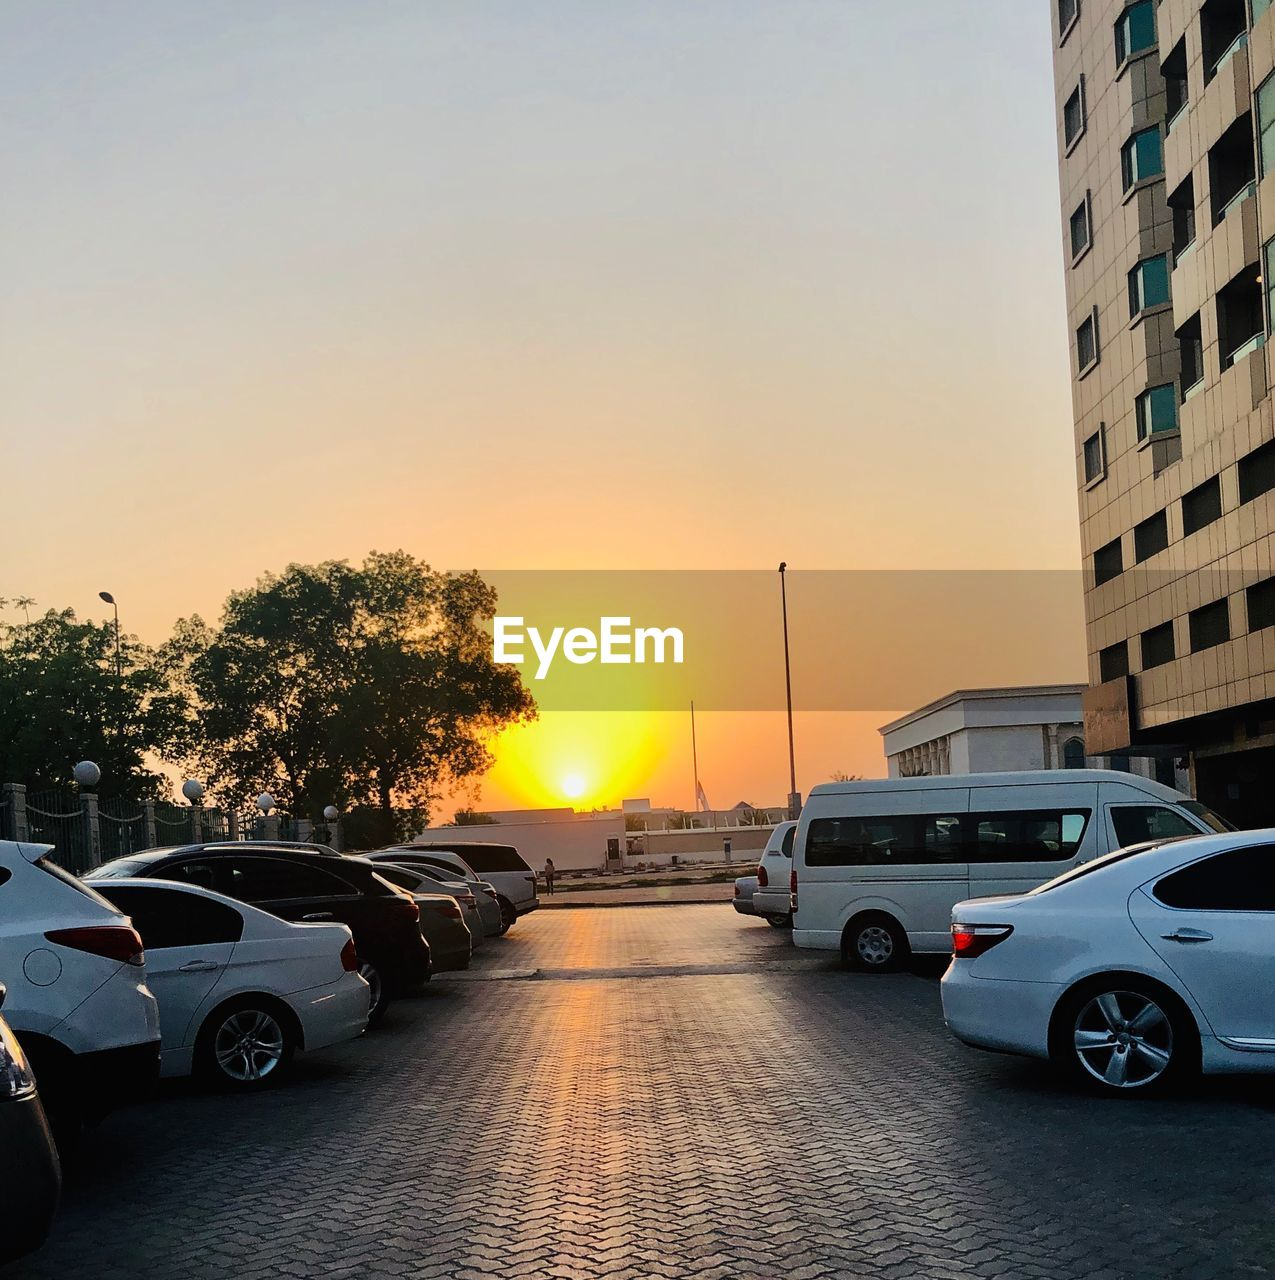 motor vehicle, car, mode of transportation, transportation, sunset, land vehicle, sky, city, architecture, road, nature, sun, building exterior, street, built structure, no people, orange color, tree, sunlight, clear sky, outdoors